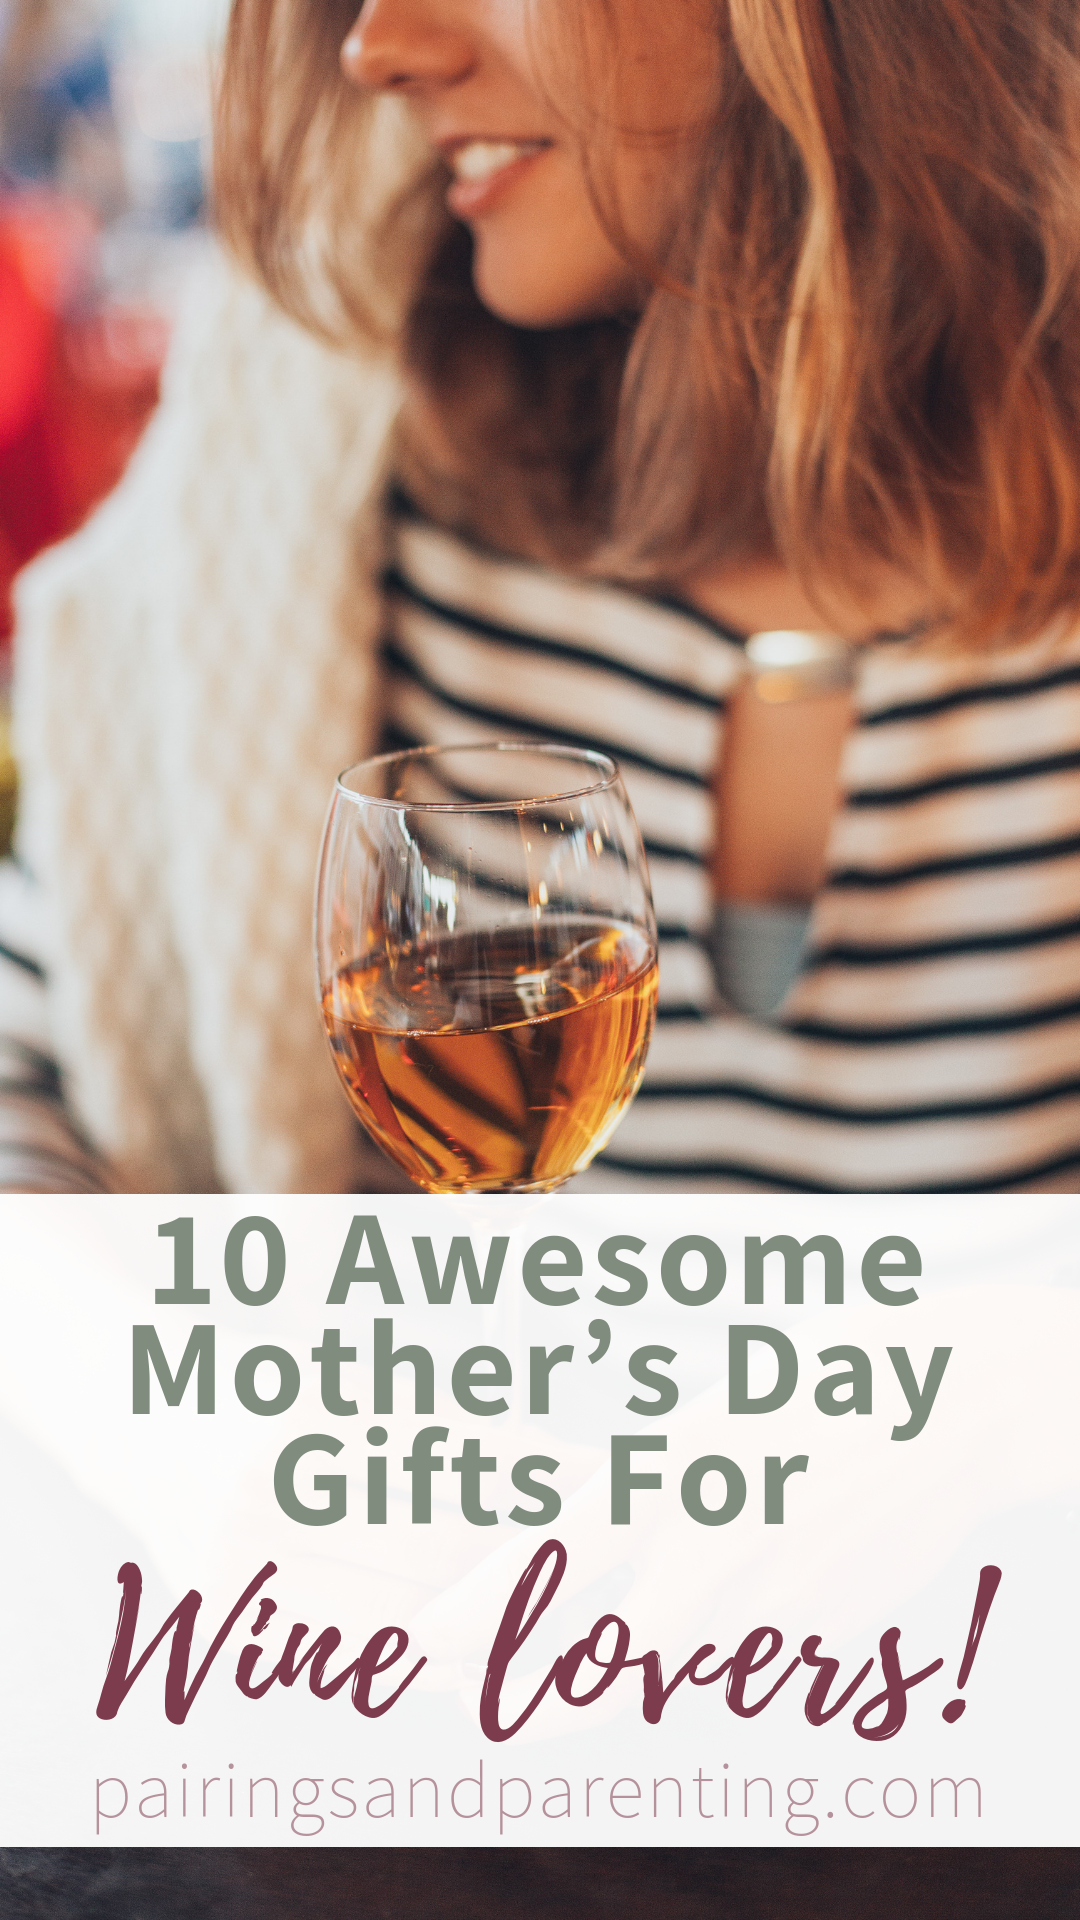 10 Awesome Mother's Day Gifts For Wine Lovers